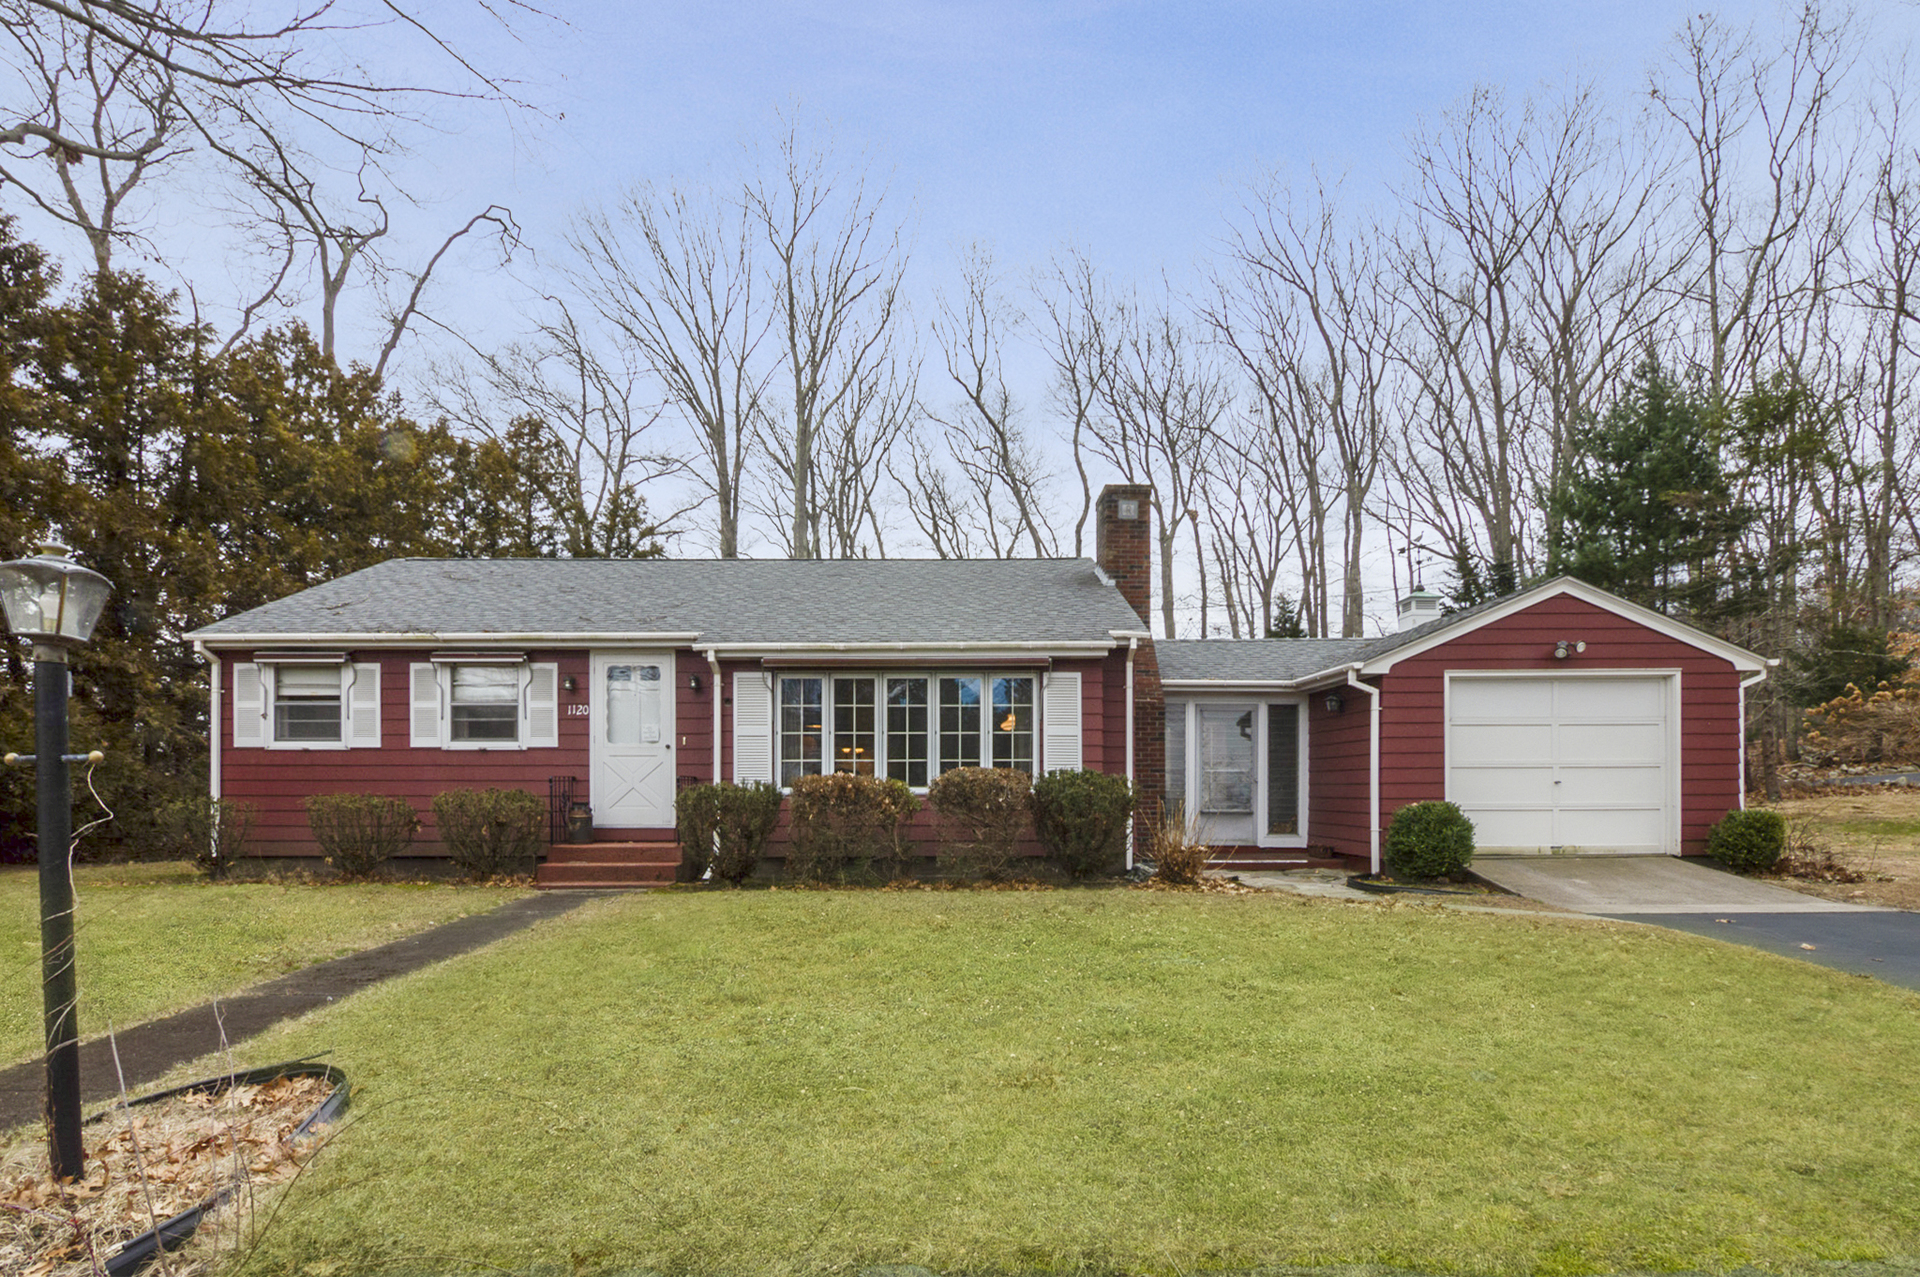 1120 Ten Rod Rd, North Kingstown, Rhode Island I Sat 2/8 from 11:00-1:00PM